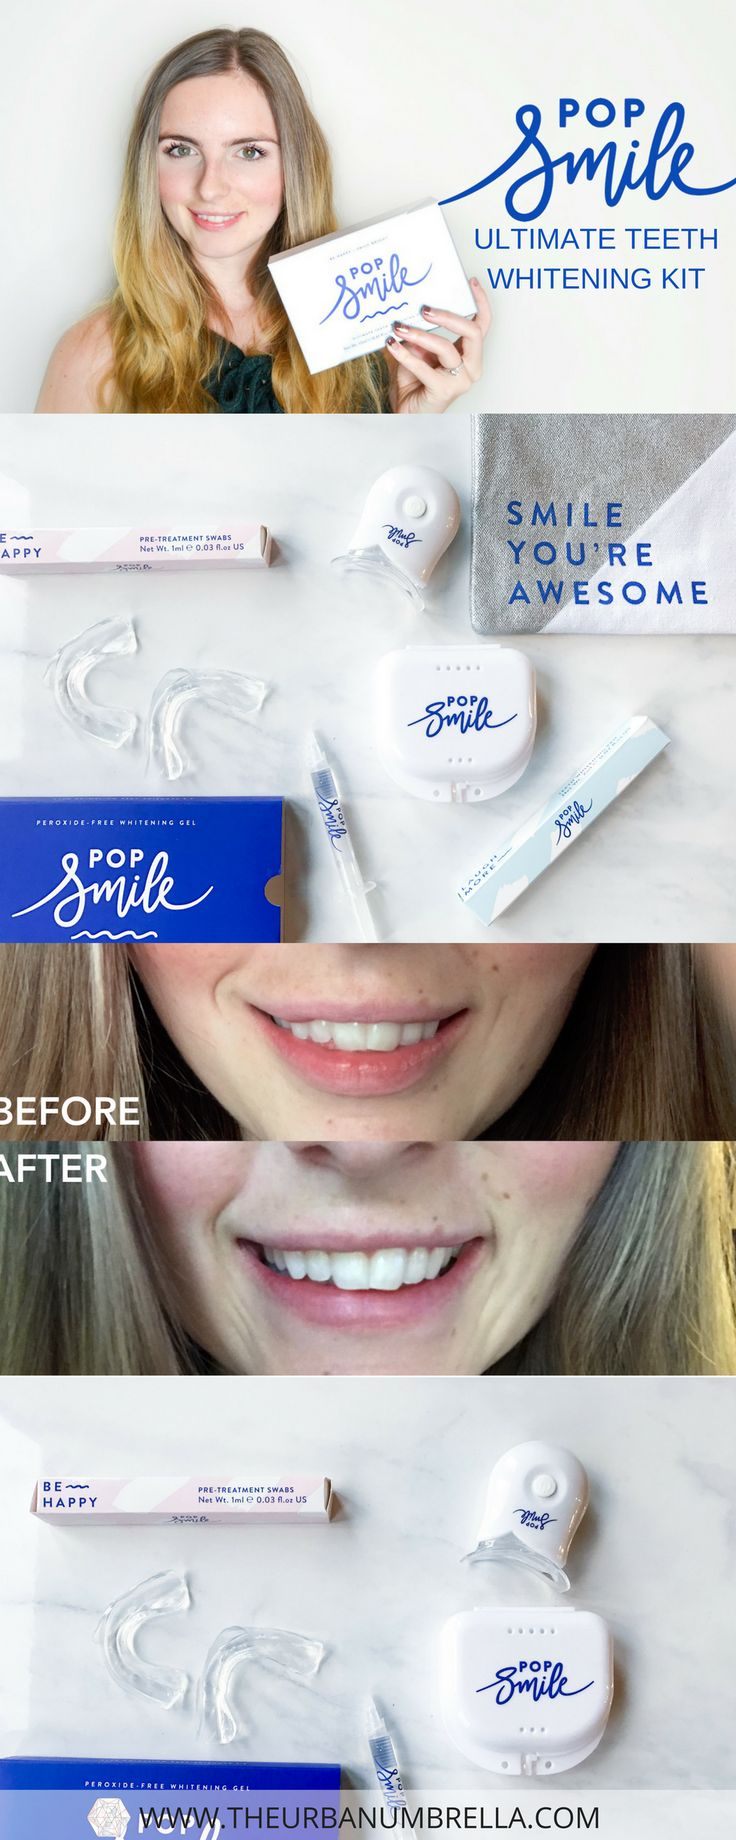 Whitening my Teeth with Pop Smile's Ultimate Teeth Whitening Kit